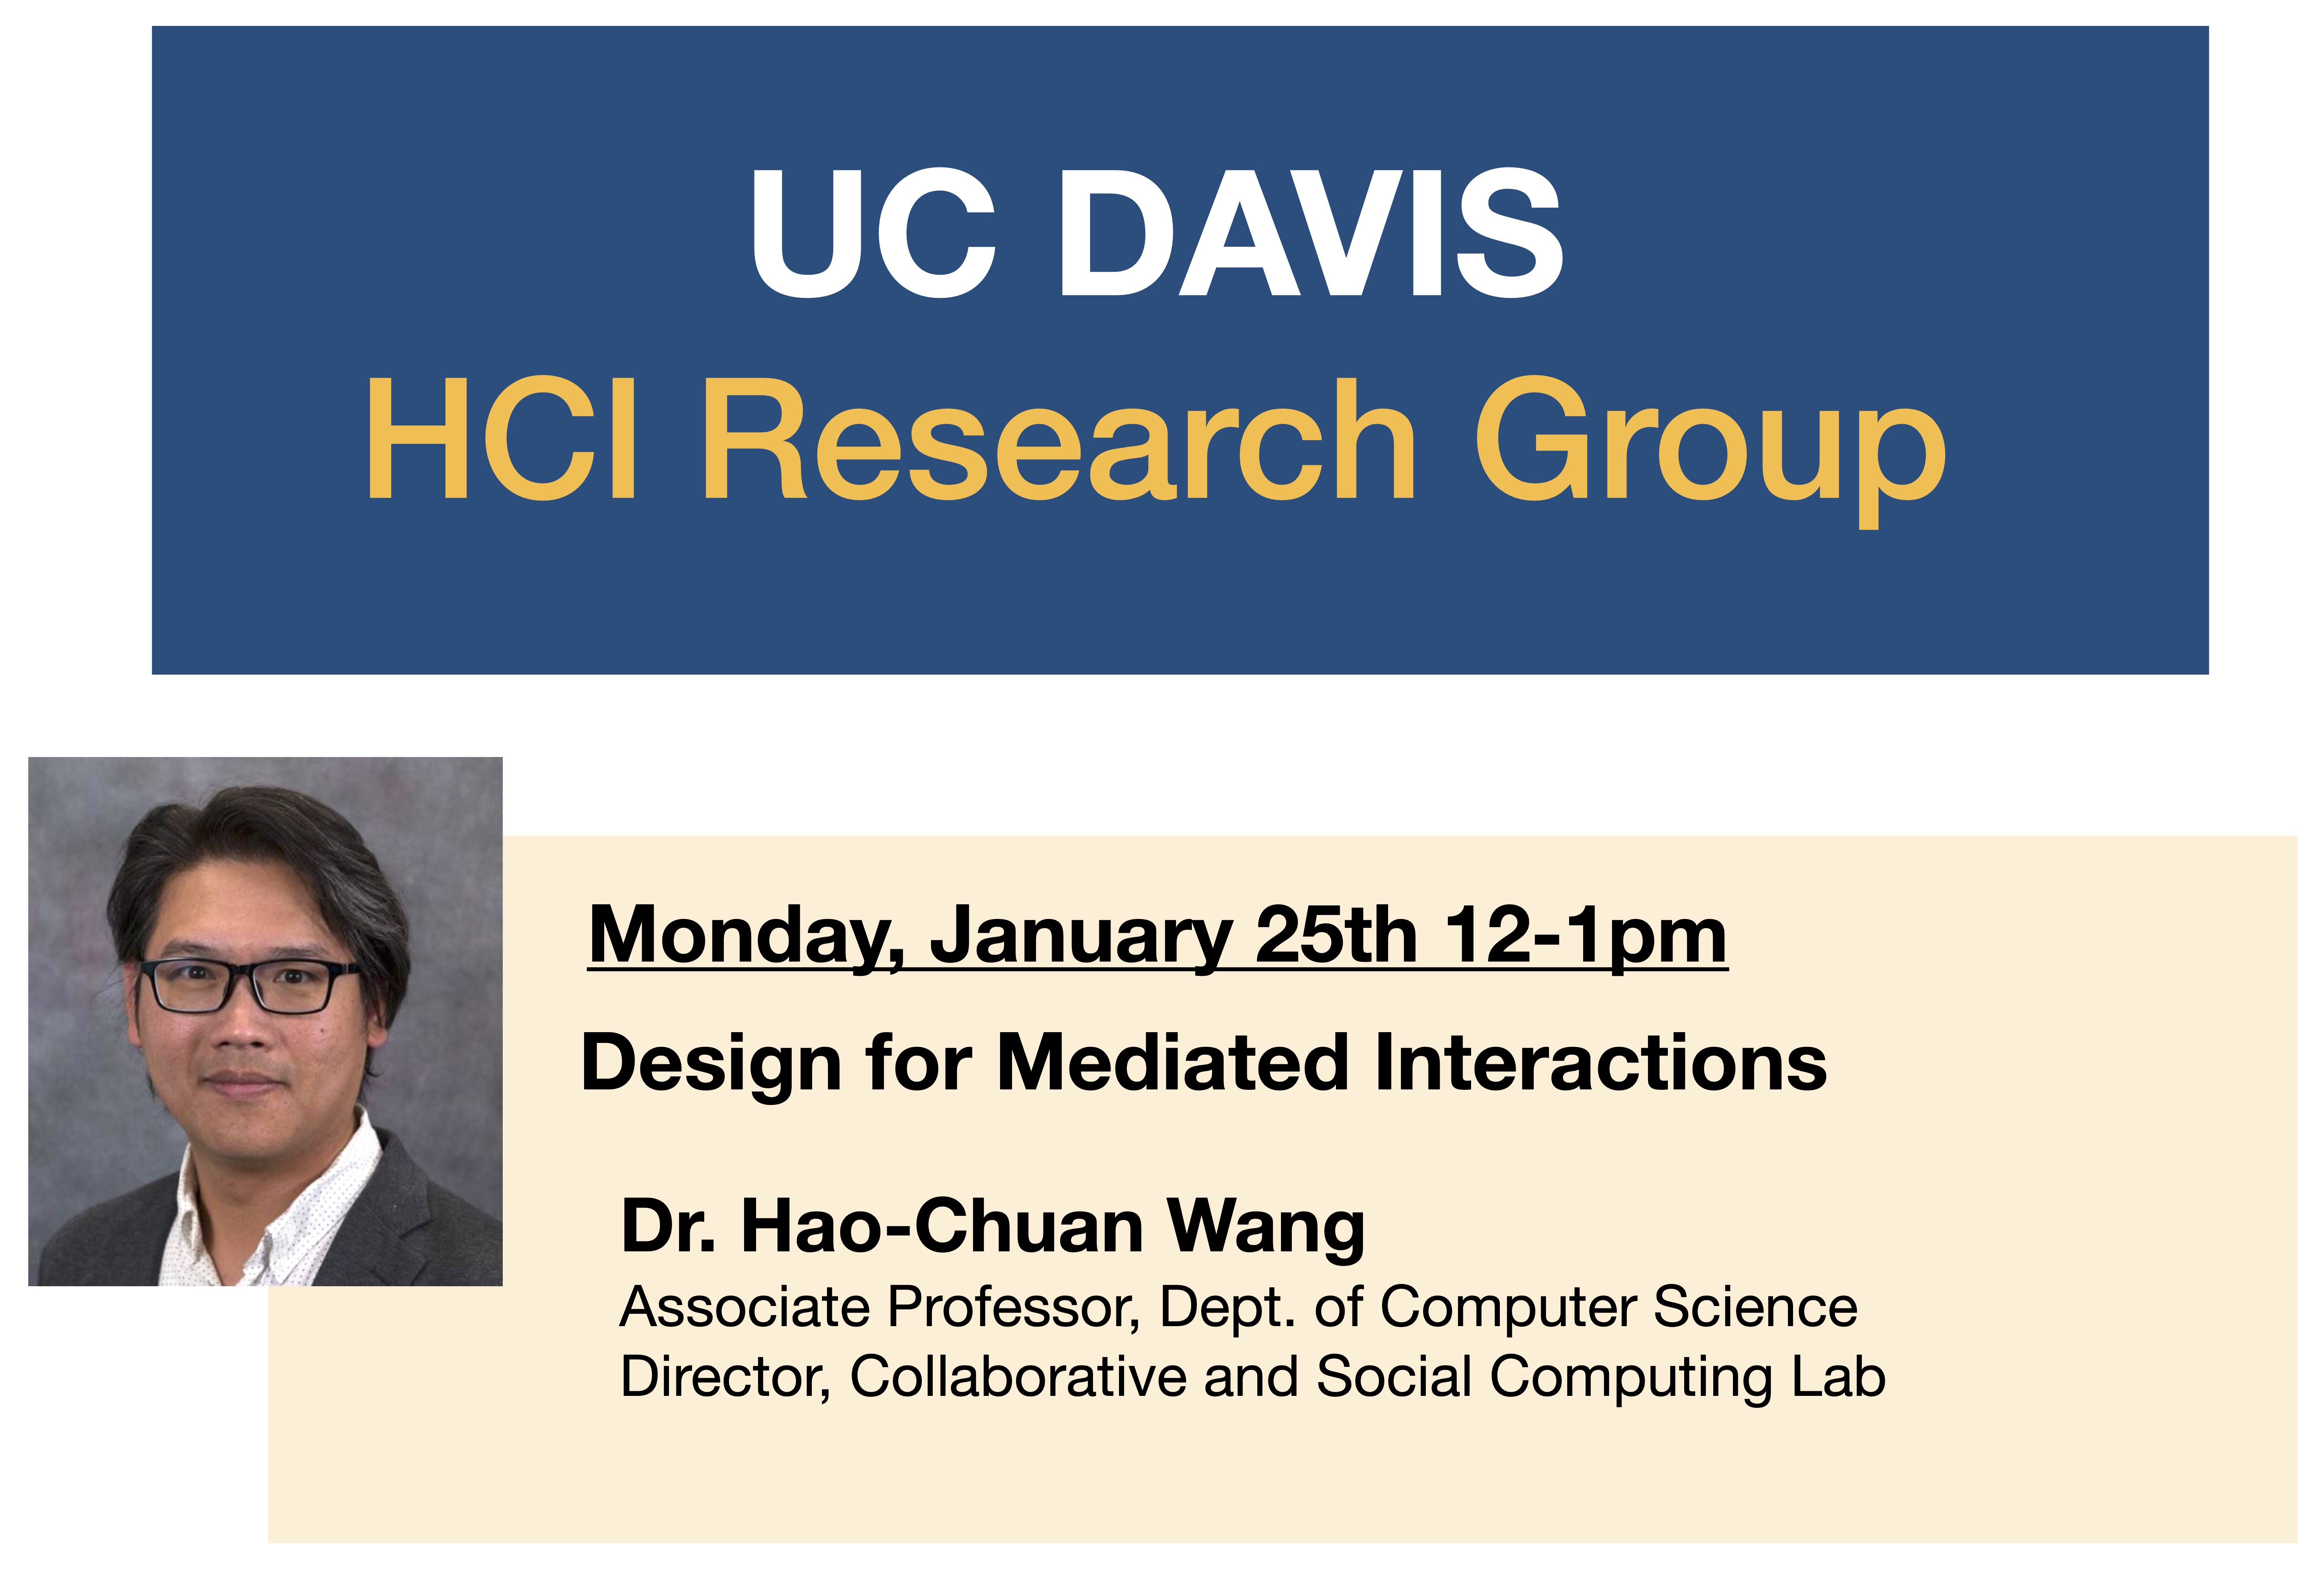 Hao-Chuan Wang will present January 25th from 12-1pm